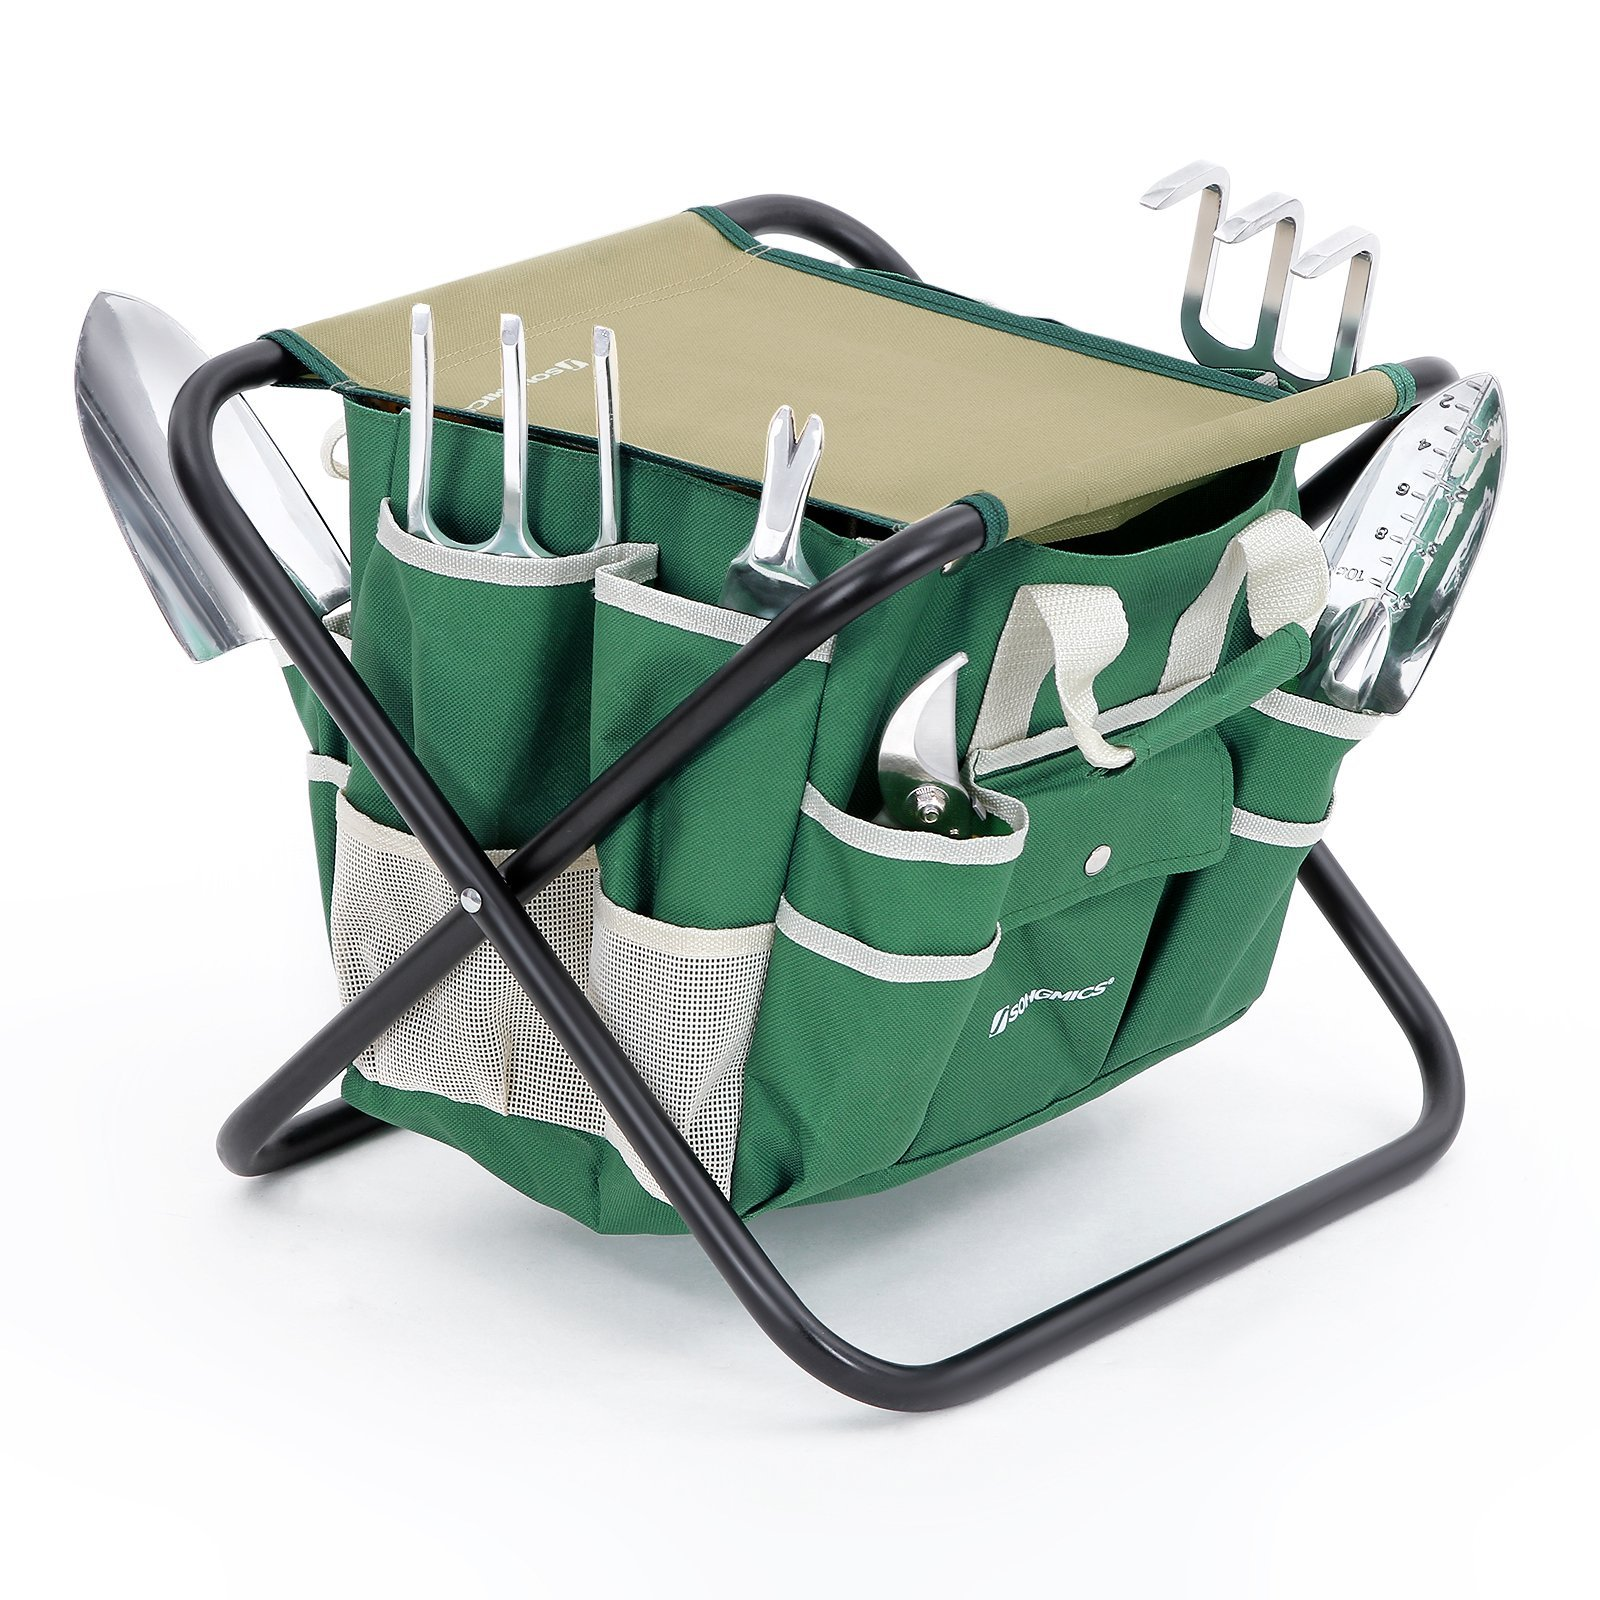 SONGMICS 8 Piece Garden Tool Set Includes Garden Tote Folding Stool and 6 Hand Tools w/ Heavy Duty Cast-aluminum Heads Ergonomic Handles UGGS40L